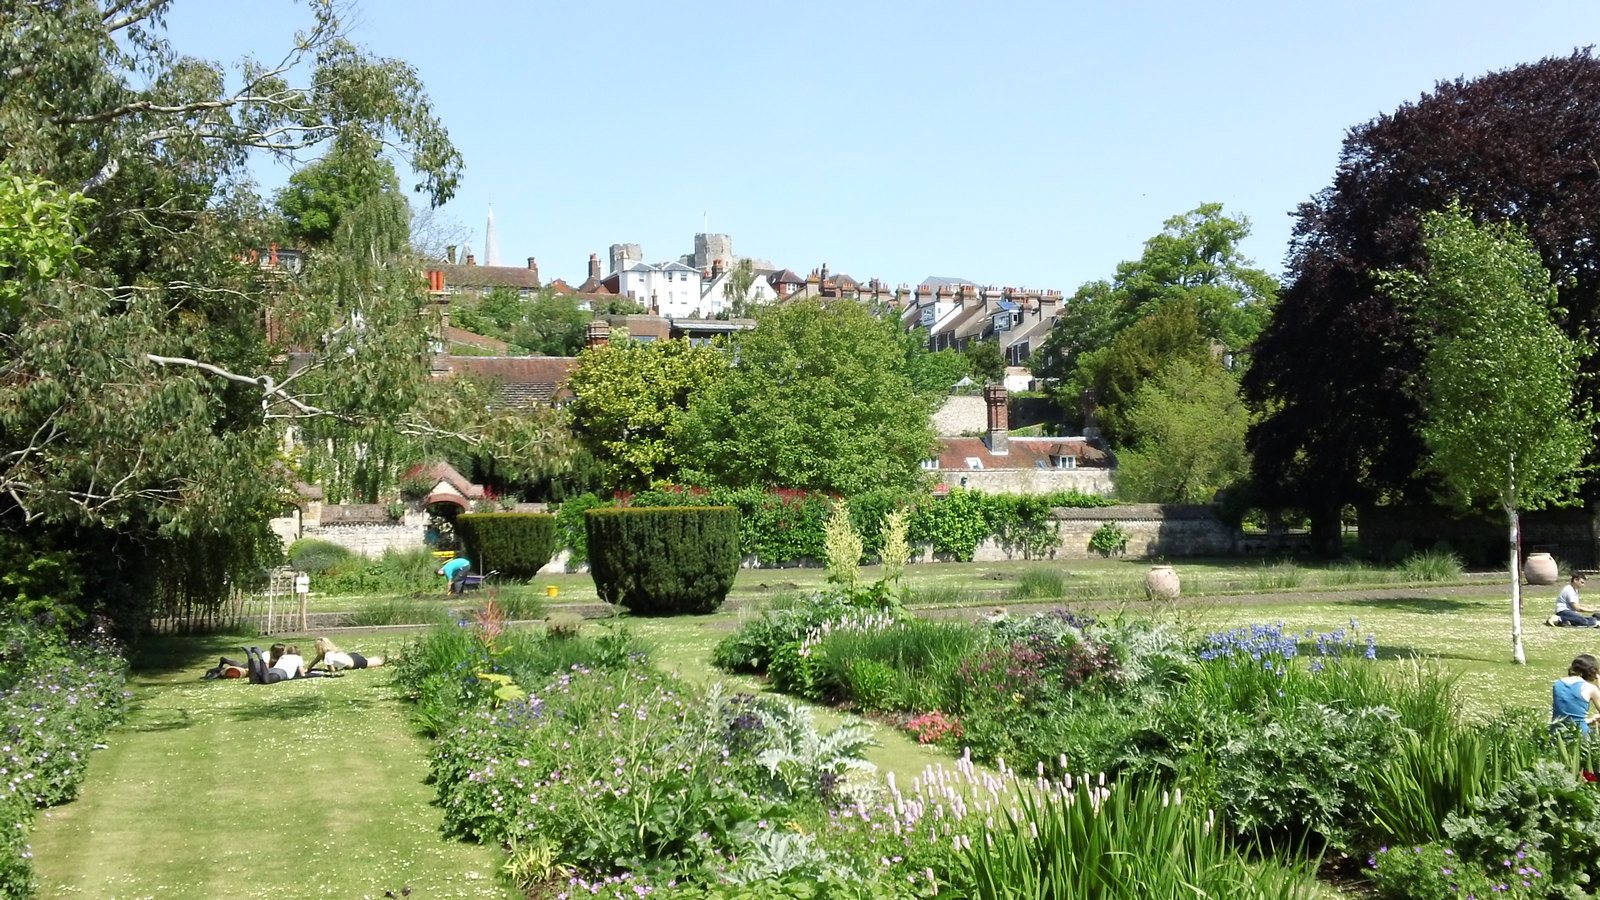 Saturday Walkers Club walk from Lewes, East Sussex to Rottingdean Southover Grange Gardens, Lewes, East Sussex